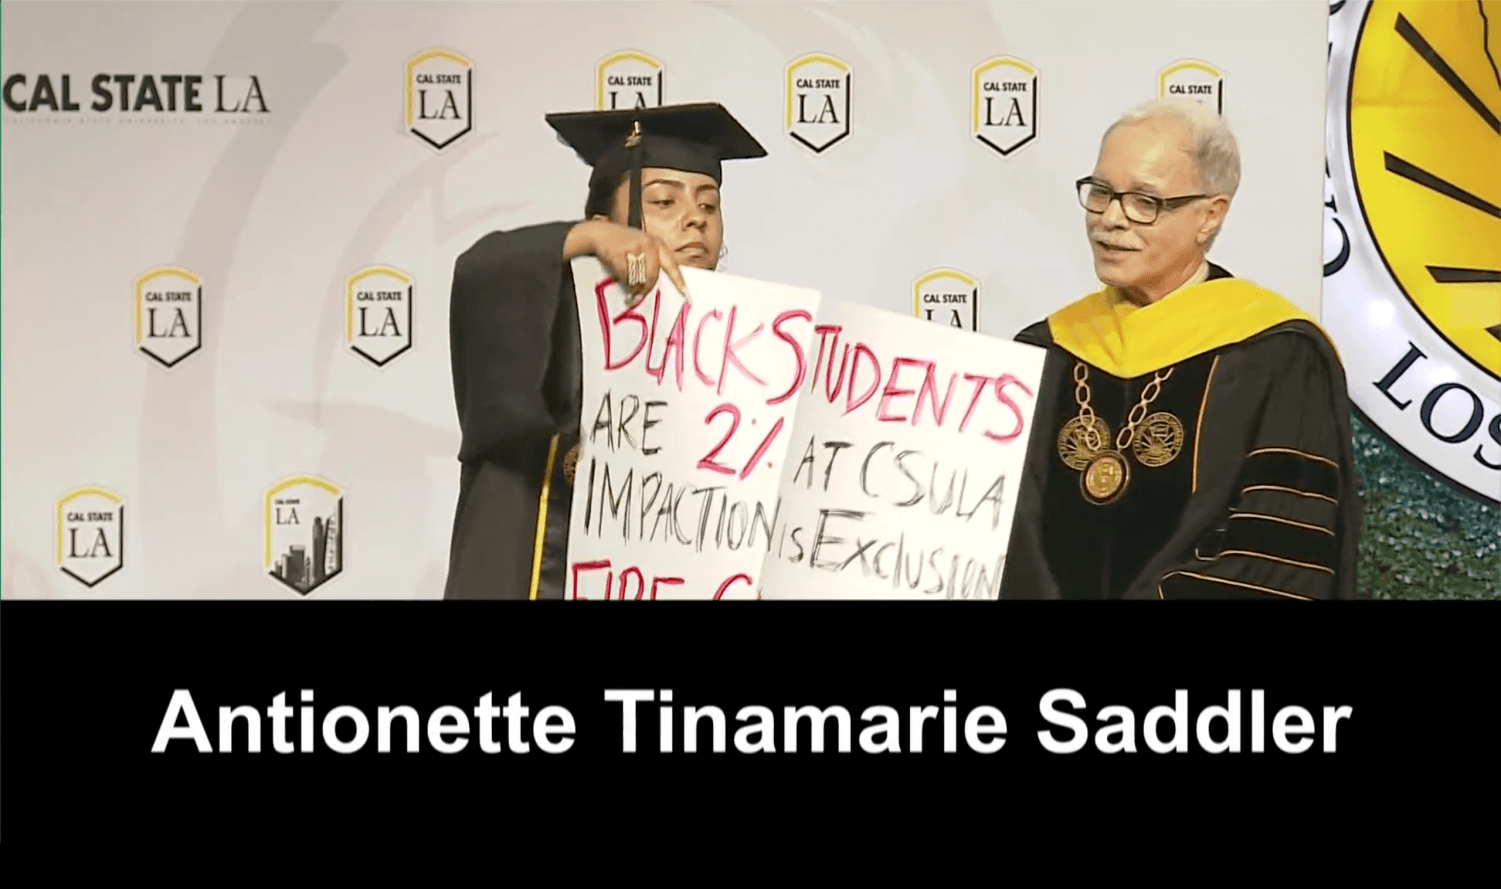 Screen shot of Cal State LA's live streamed video of the college of Natural and Social Sciences. Antoinette Tinamarie Saddler, a Cal State LA Pan-African Studies graduate, protests Presidetn William A. Covino by holding up a sign that reads